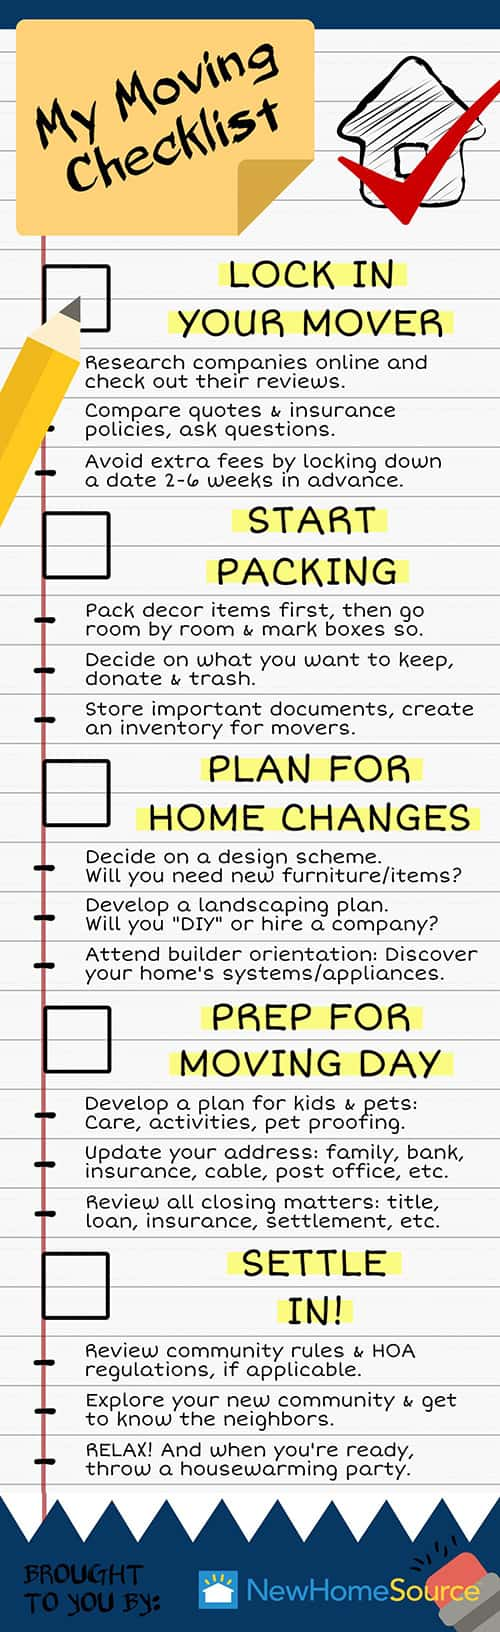 Moving Checklist for FirstTime Homebuyer – Moving Checklist